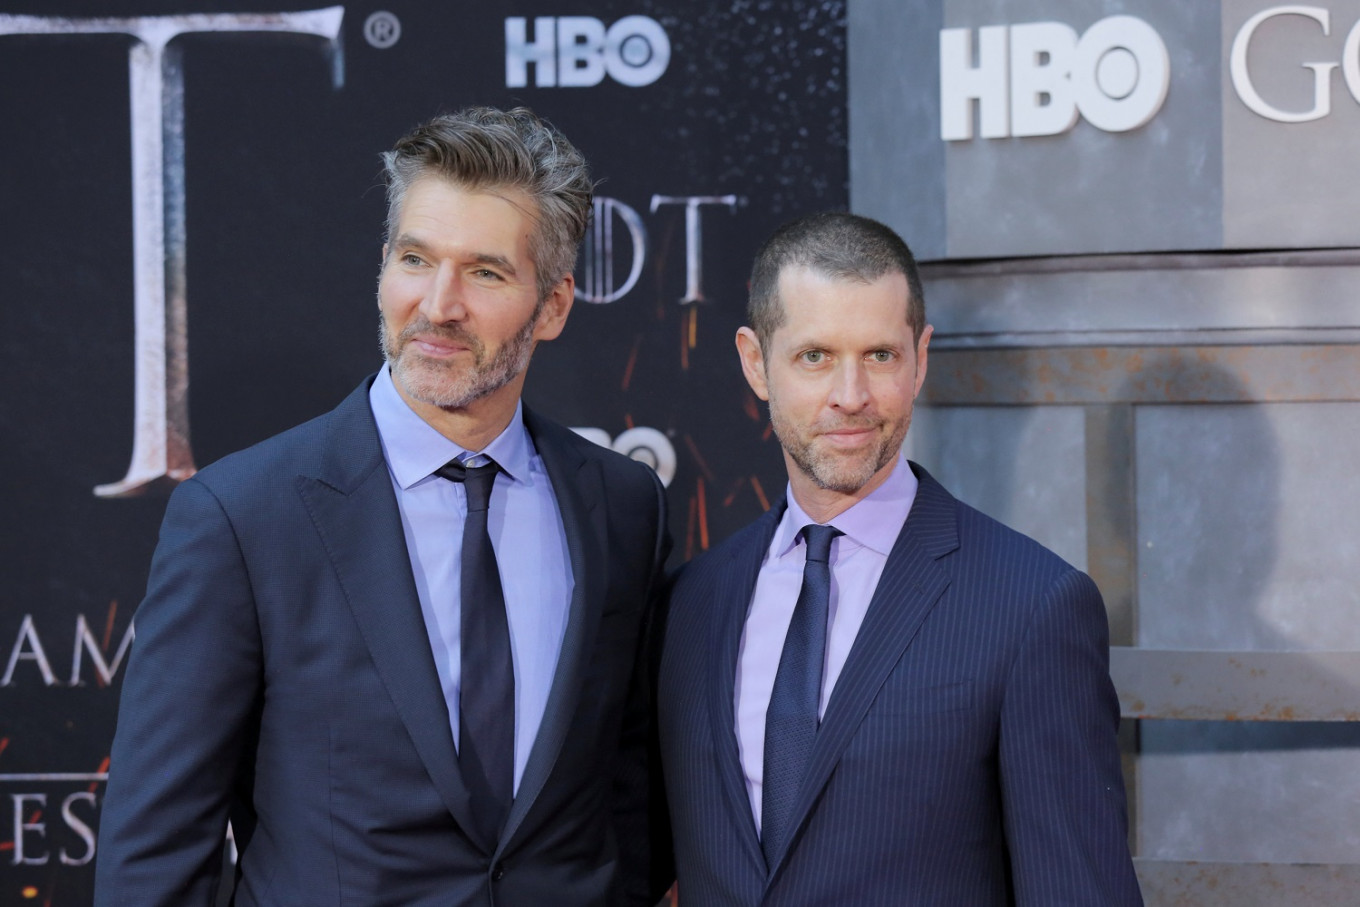 'Game of Thrones' showrunners ink massive Netflix deal